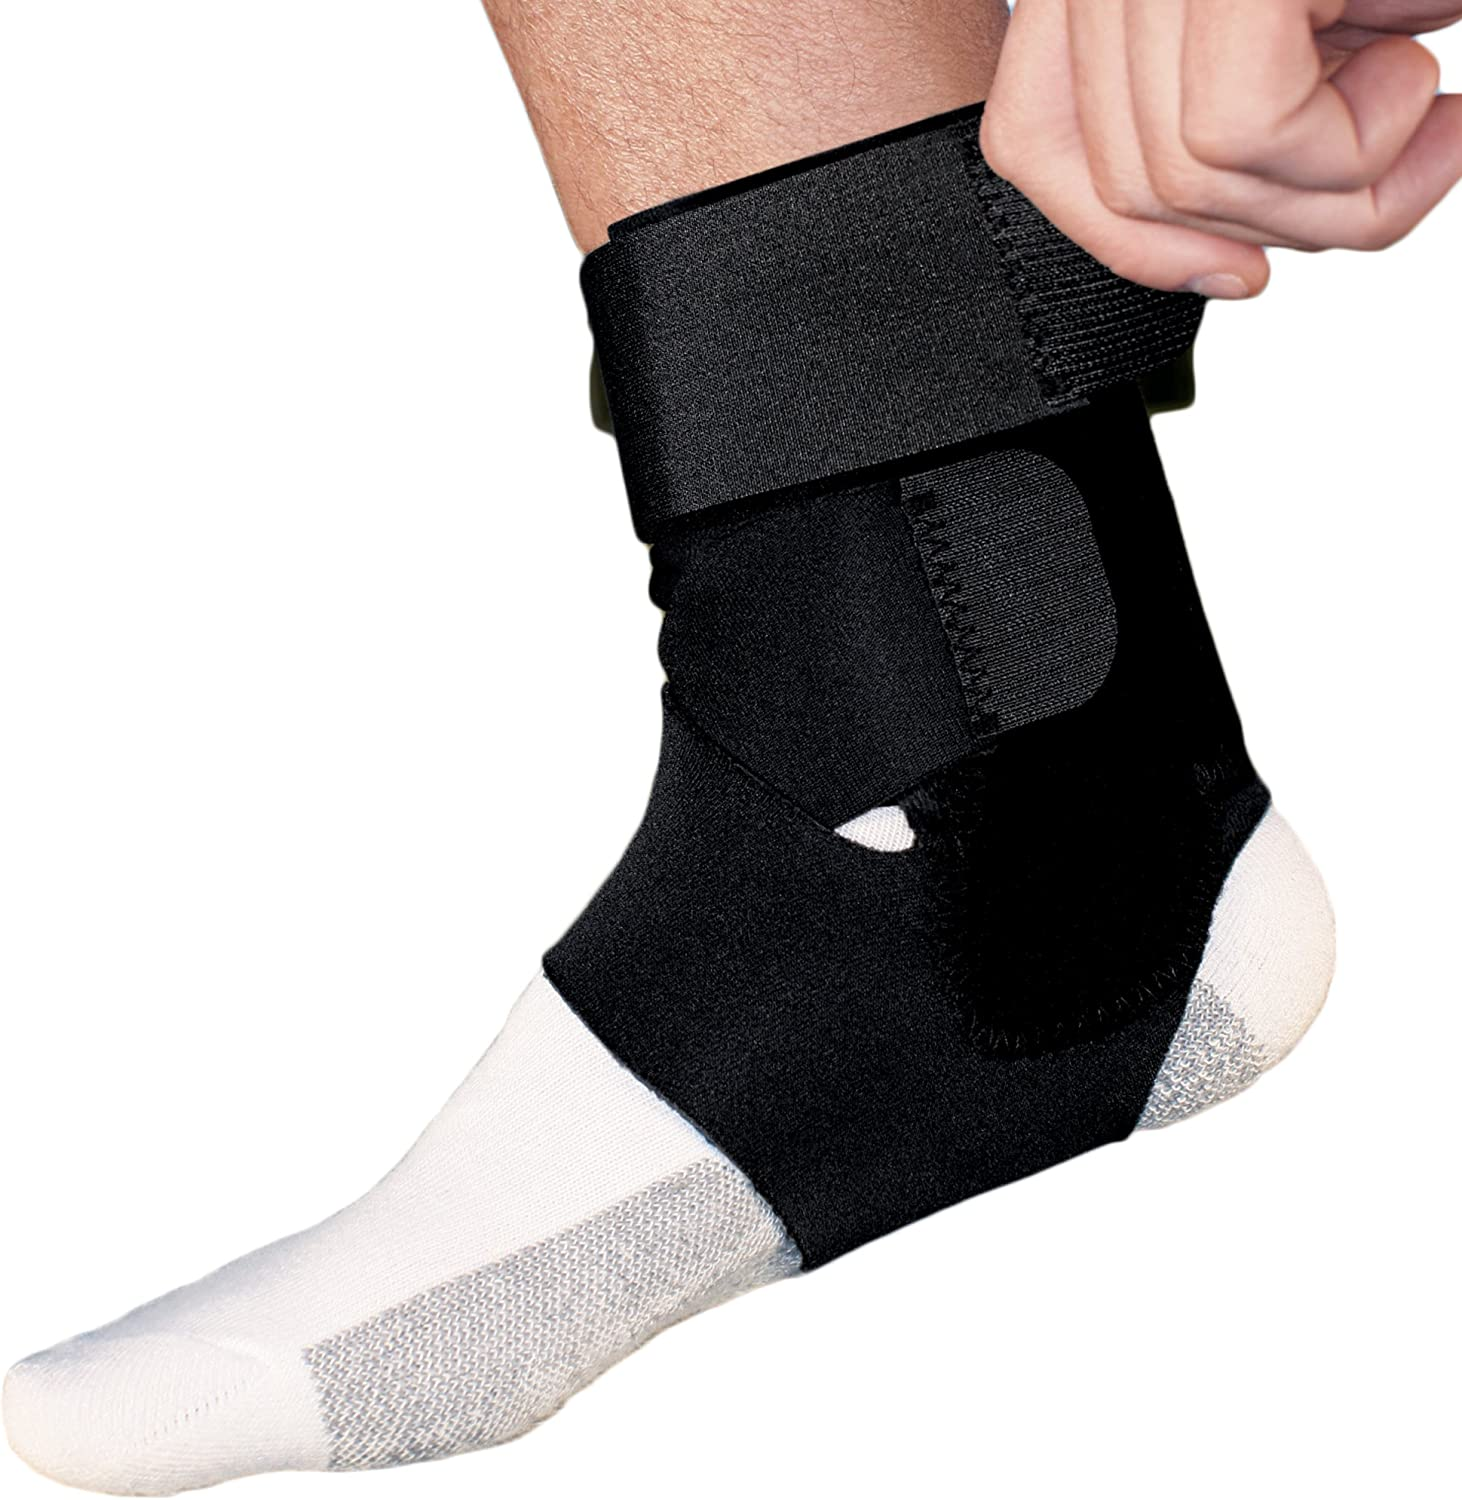 ACE Brand Sport Deluxe Ankle Stabilizer, America's Most Trusted Brand of Braces and Supports, Money Back Satisfaction Guarantee